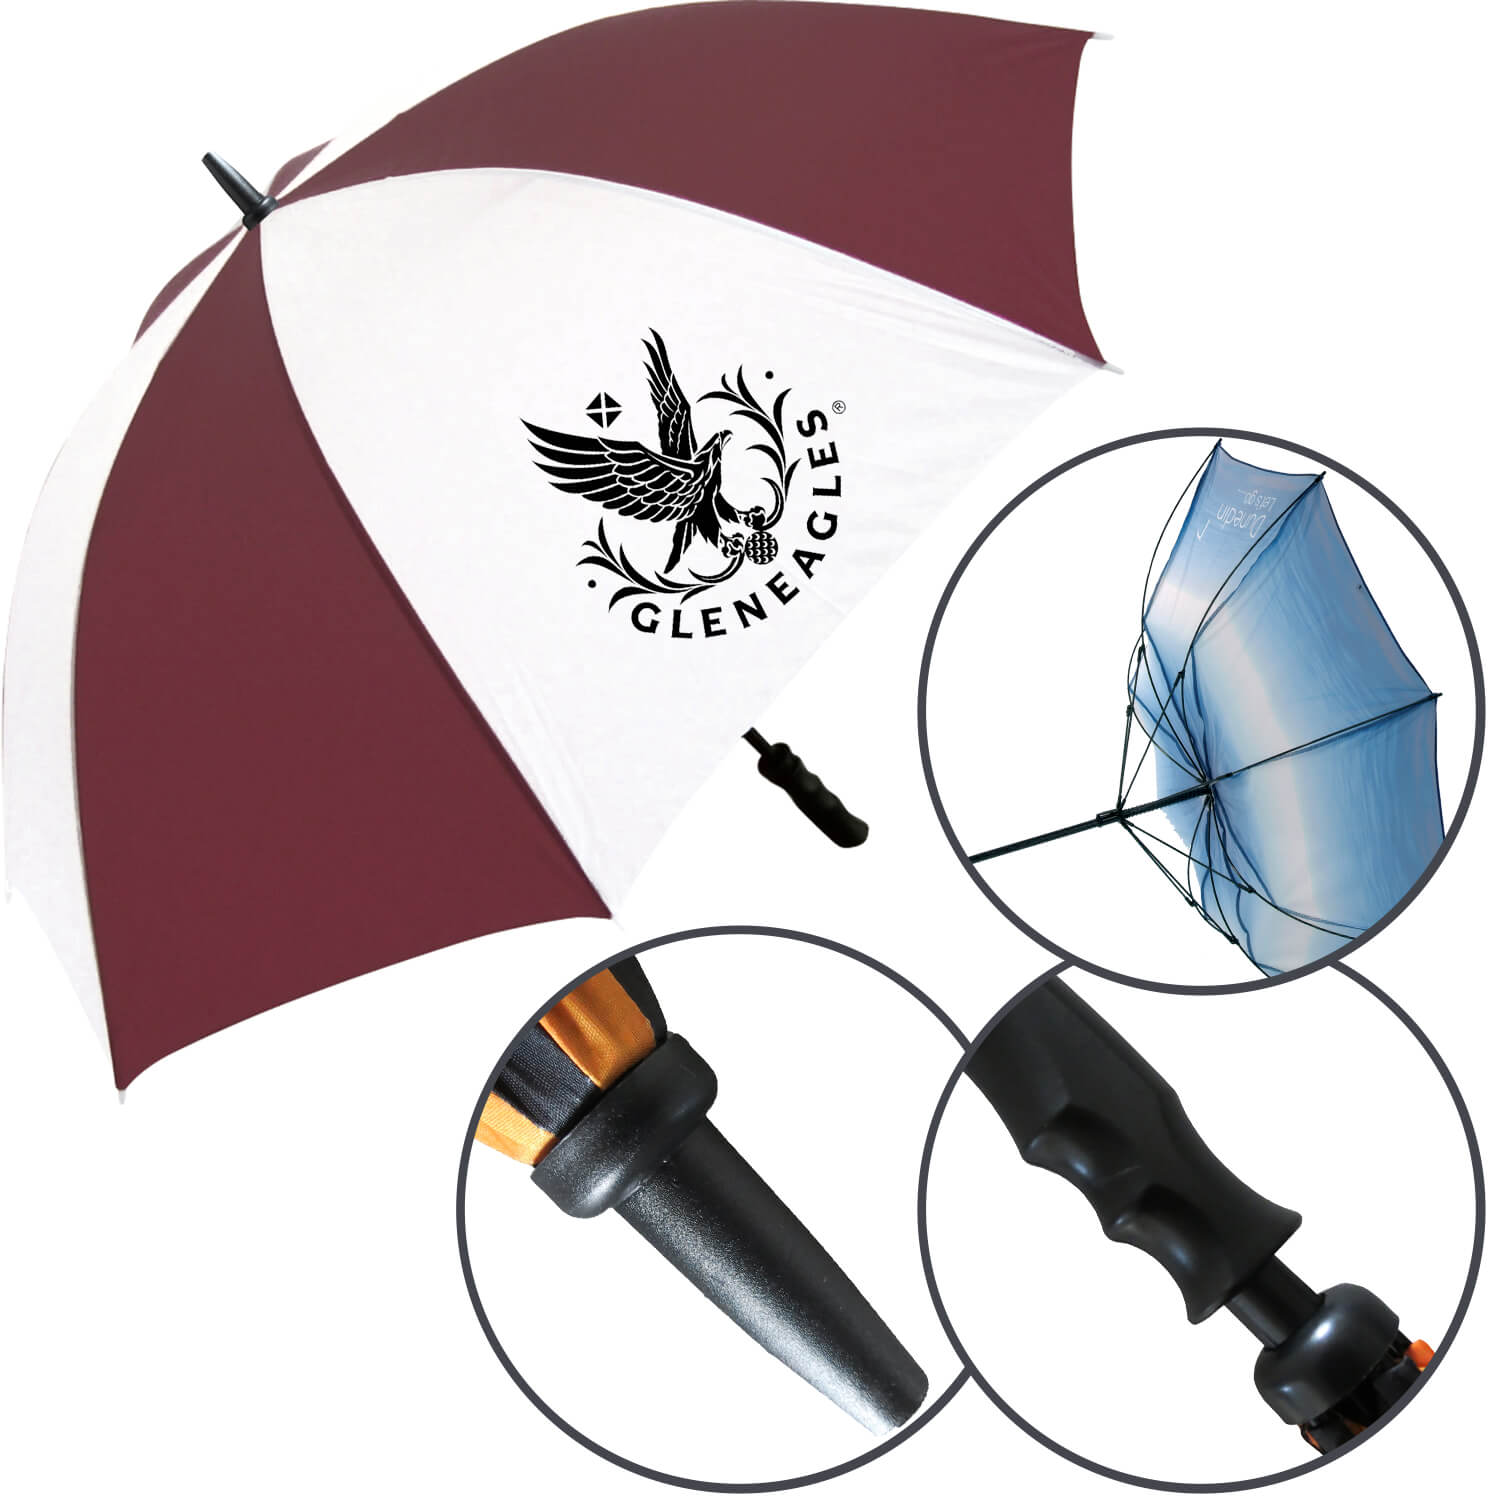 The Fibrestorm Golf Umbrella